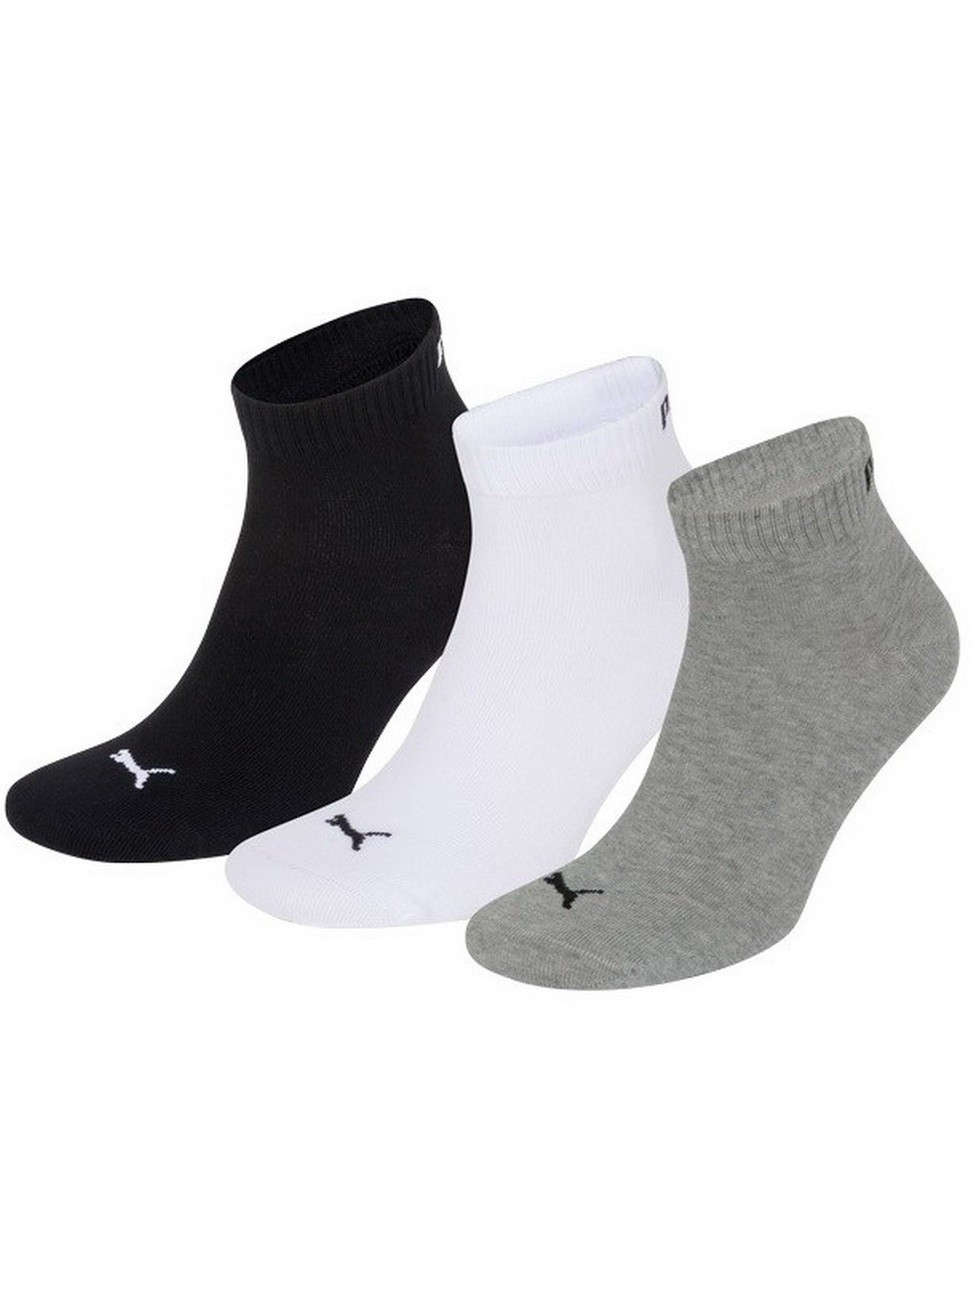 Puma Quarter Unisex Quarter Quarters Socken - 3er Pack 39-42, grey/white/black (882)